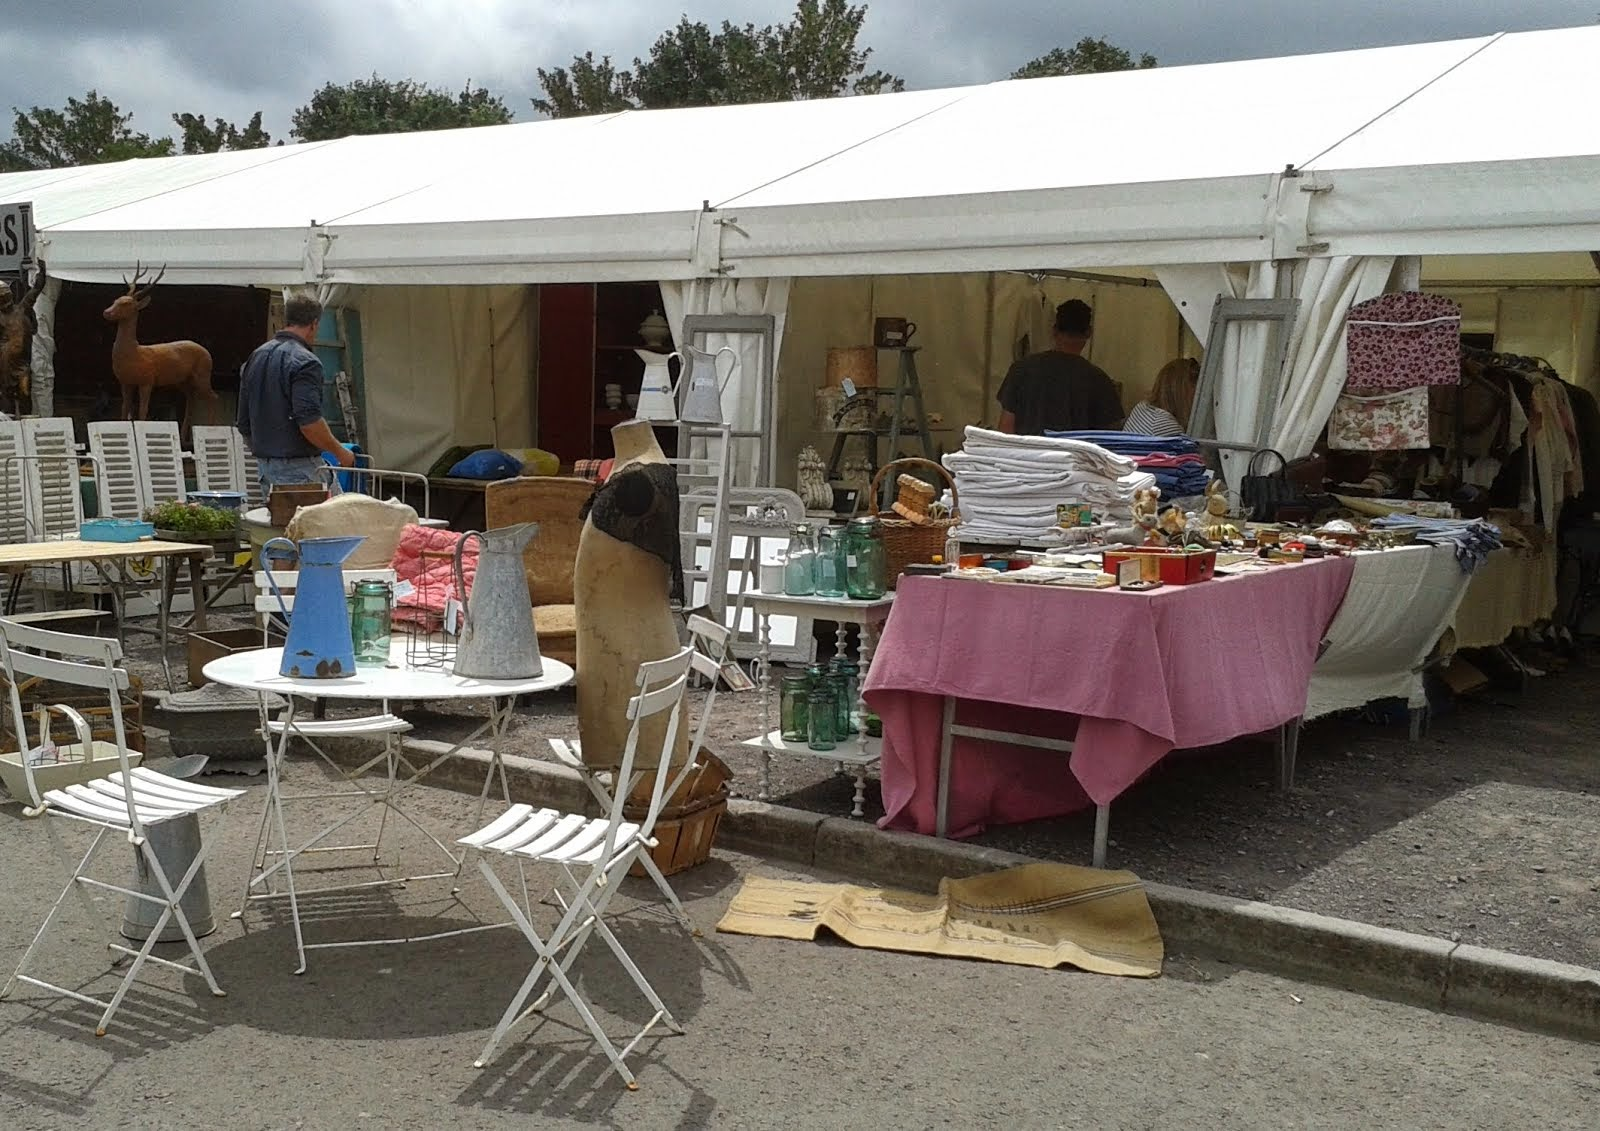 Shepton Mallet iacf Antiques Fair